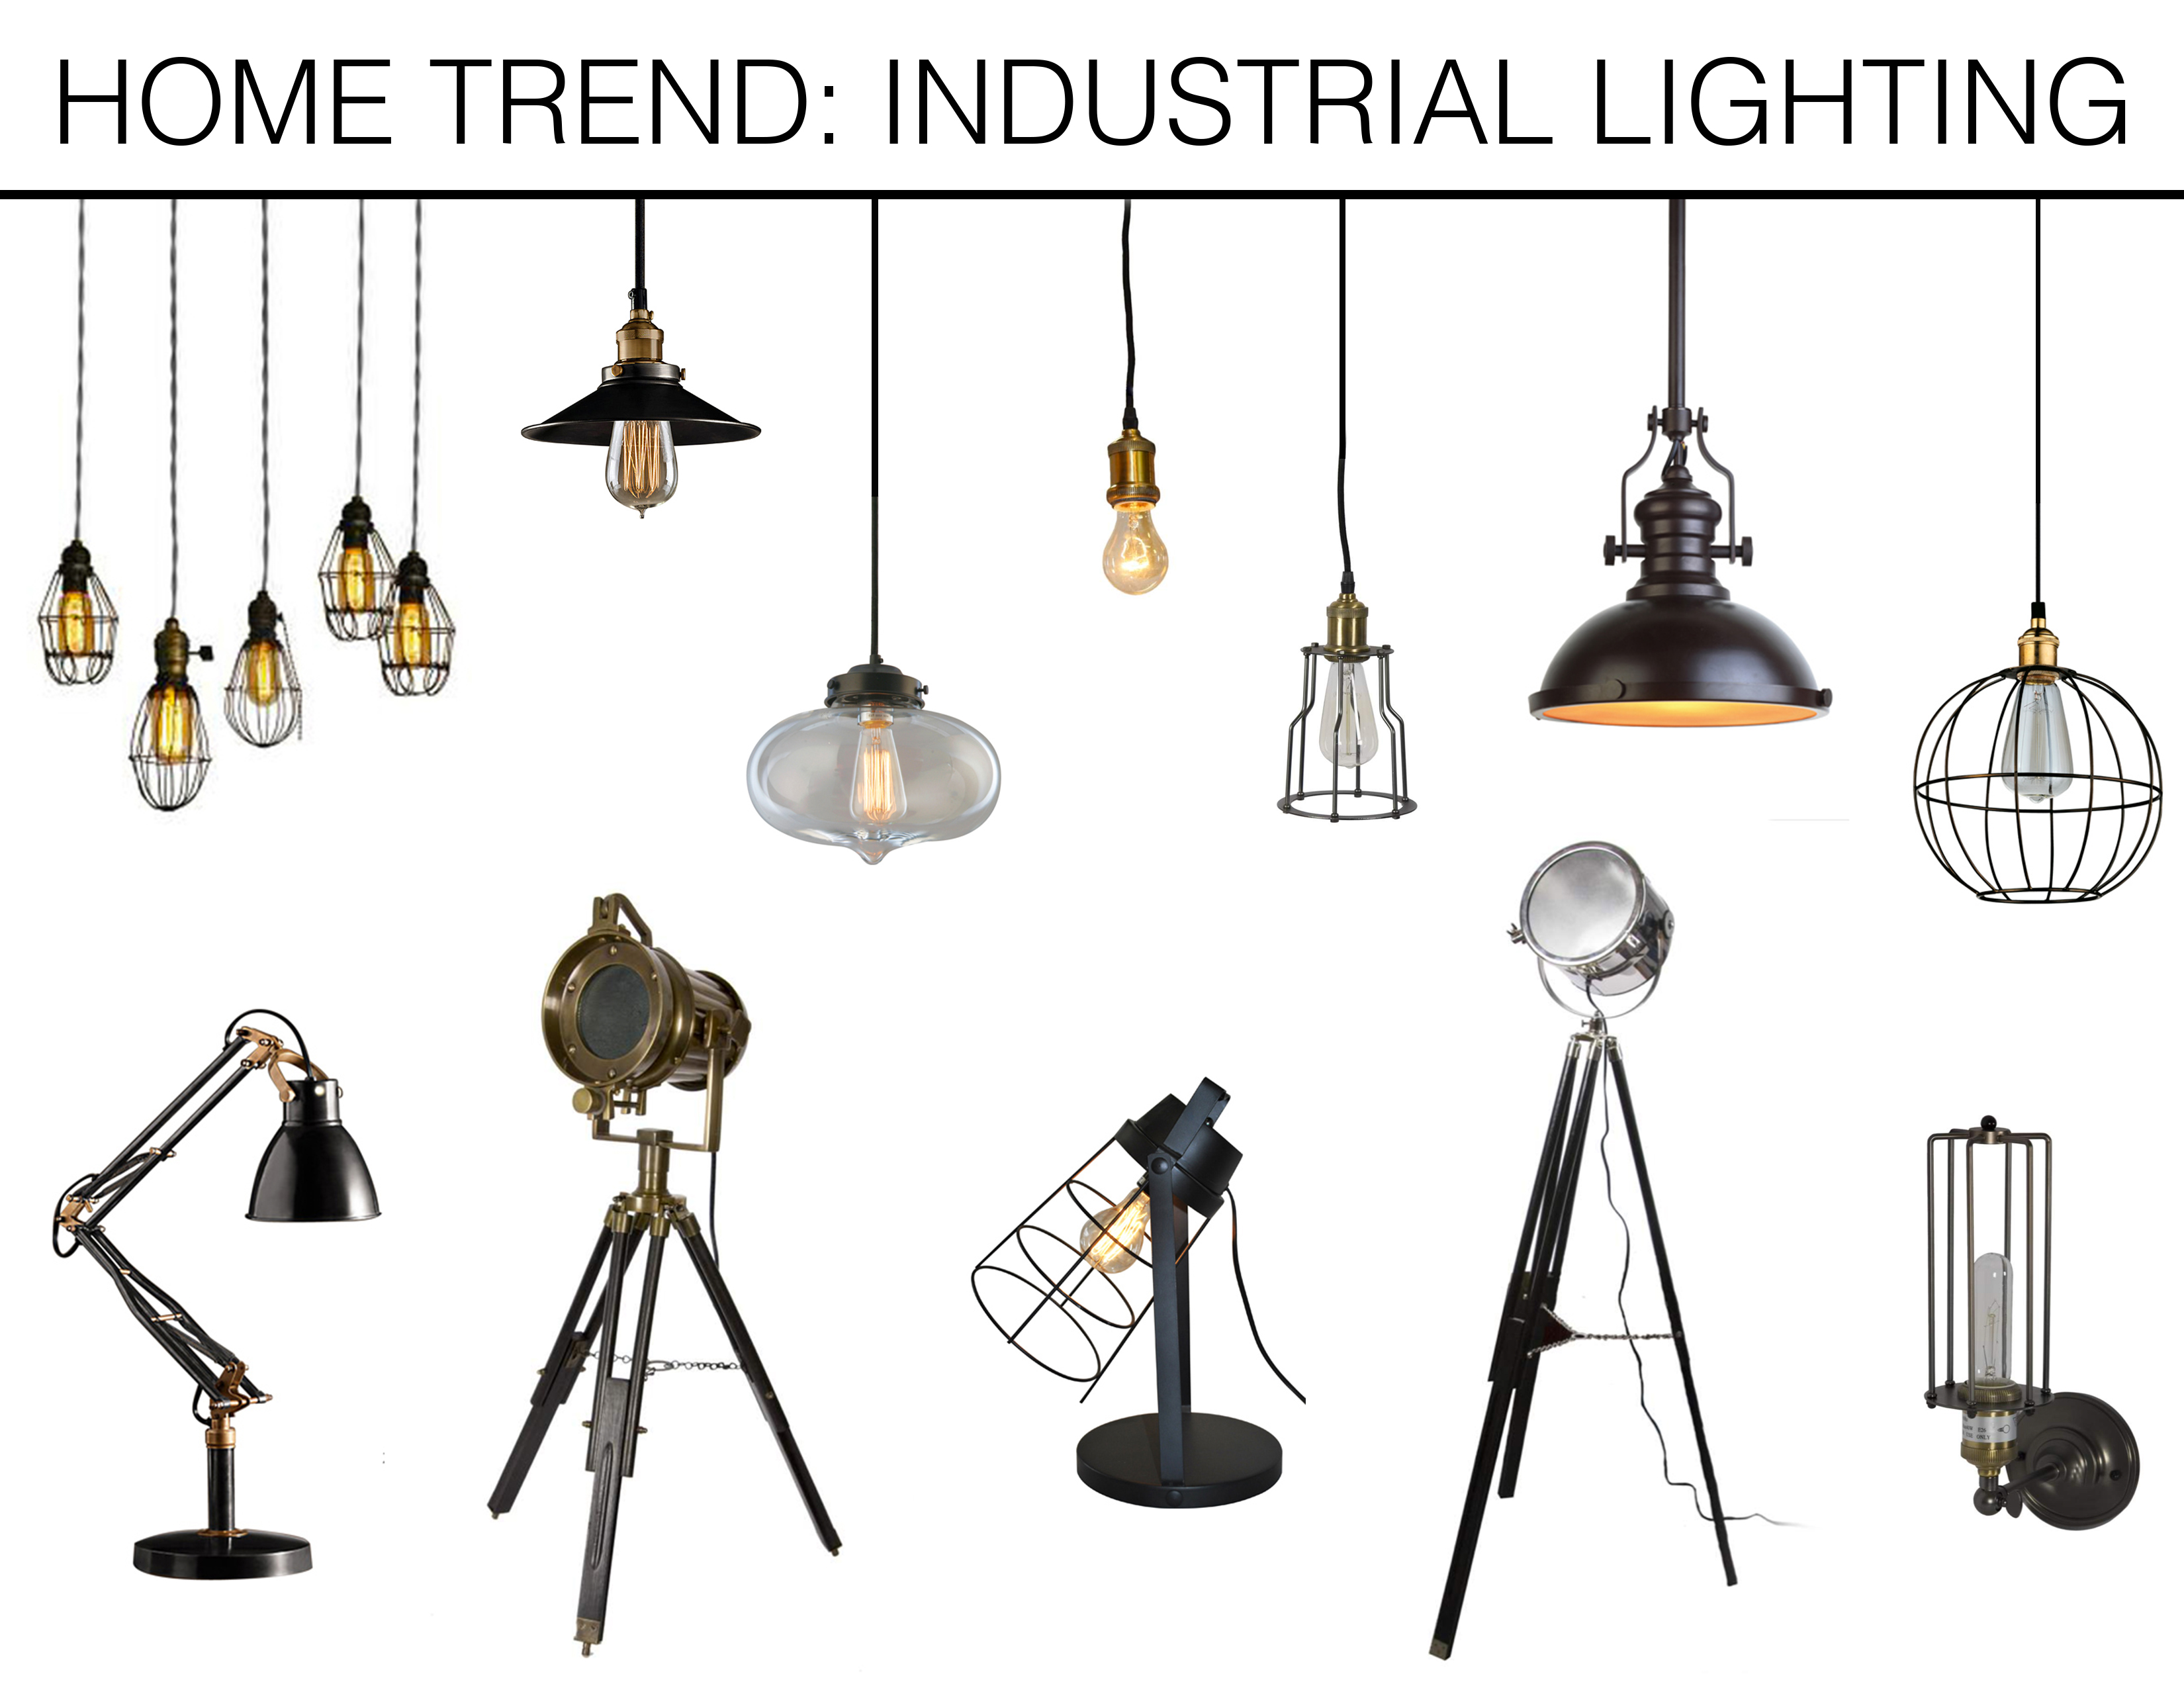 lamps vintage industrial electrics industrial kitchen light fixtures 64 best images about Lamps Vintage Industrial Electrics on Pinterest Industrial Floor lamps and Lamps